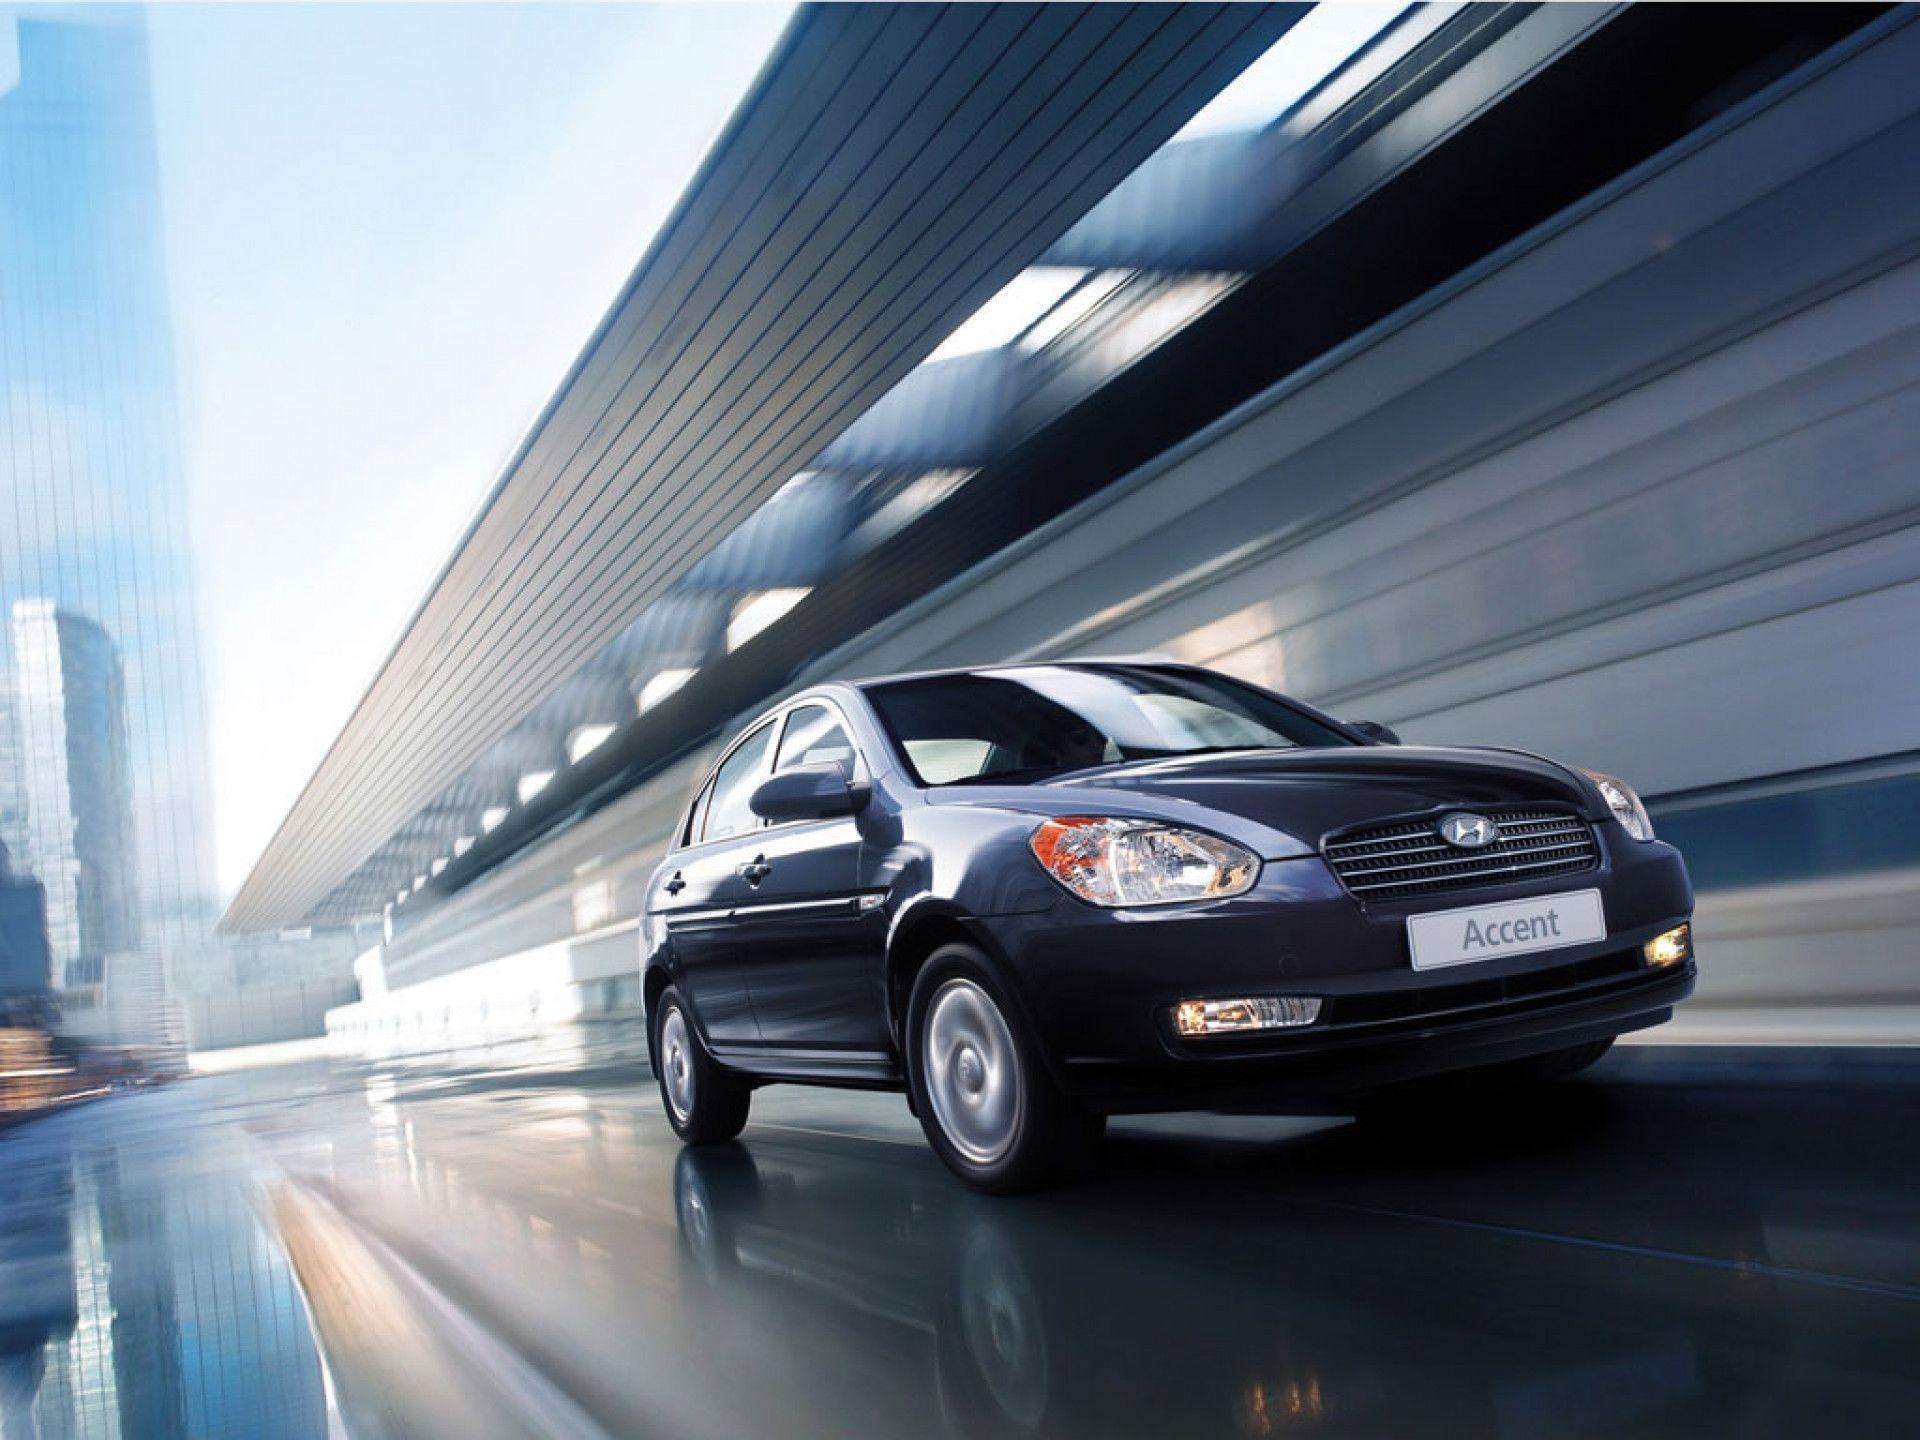 Hyundai Accent Wallpapers